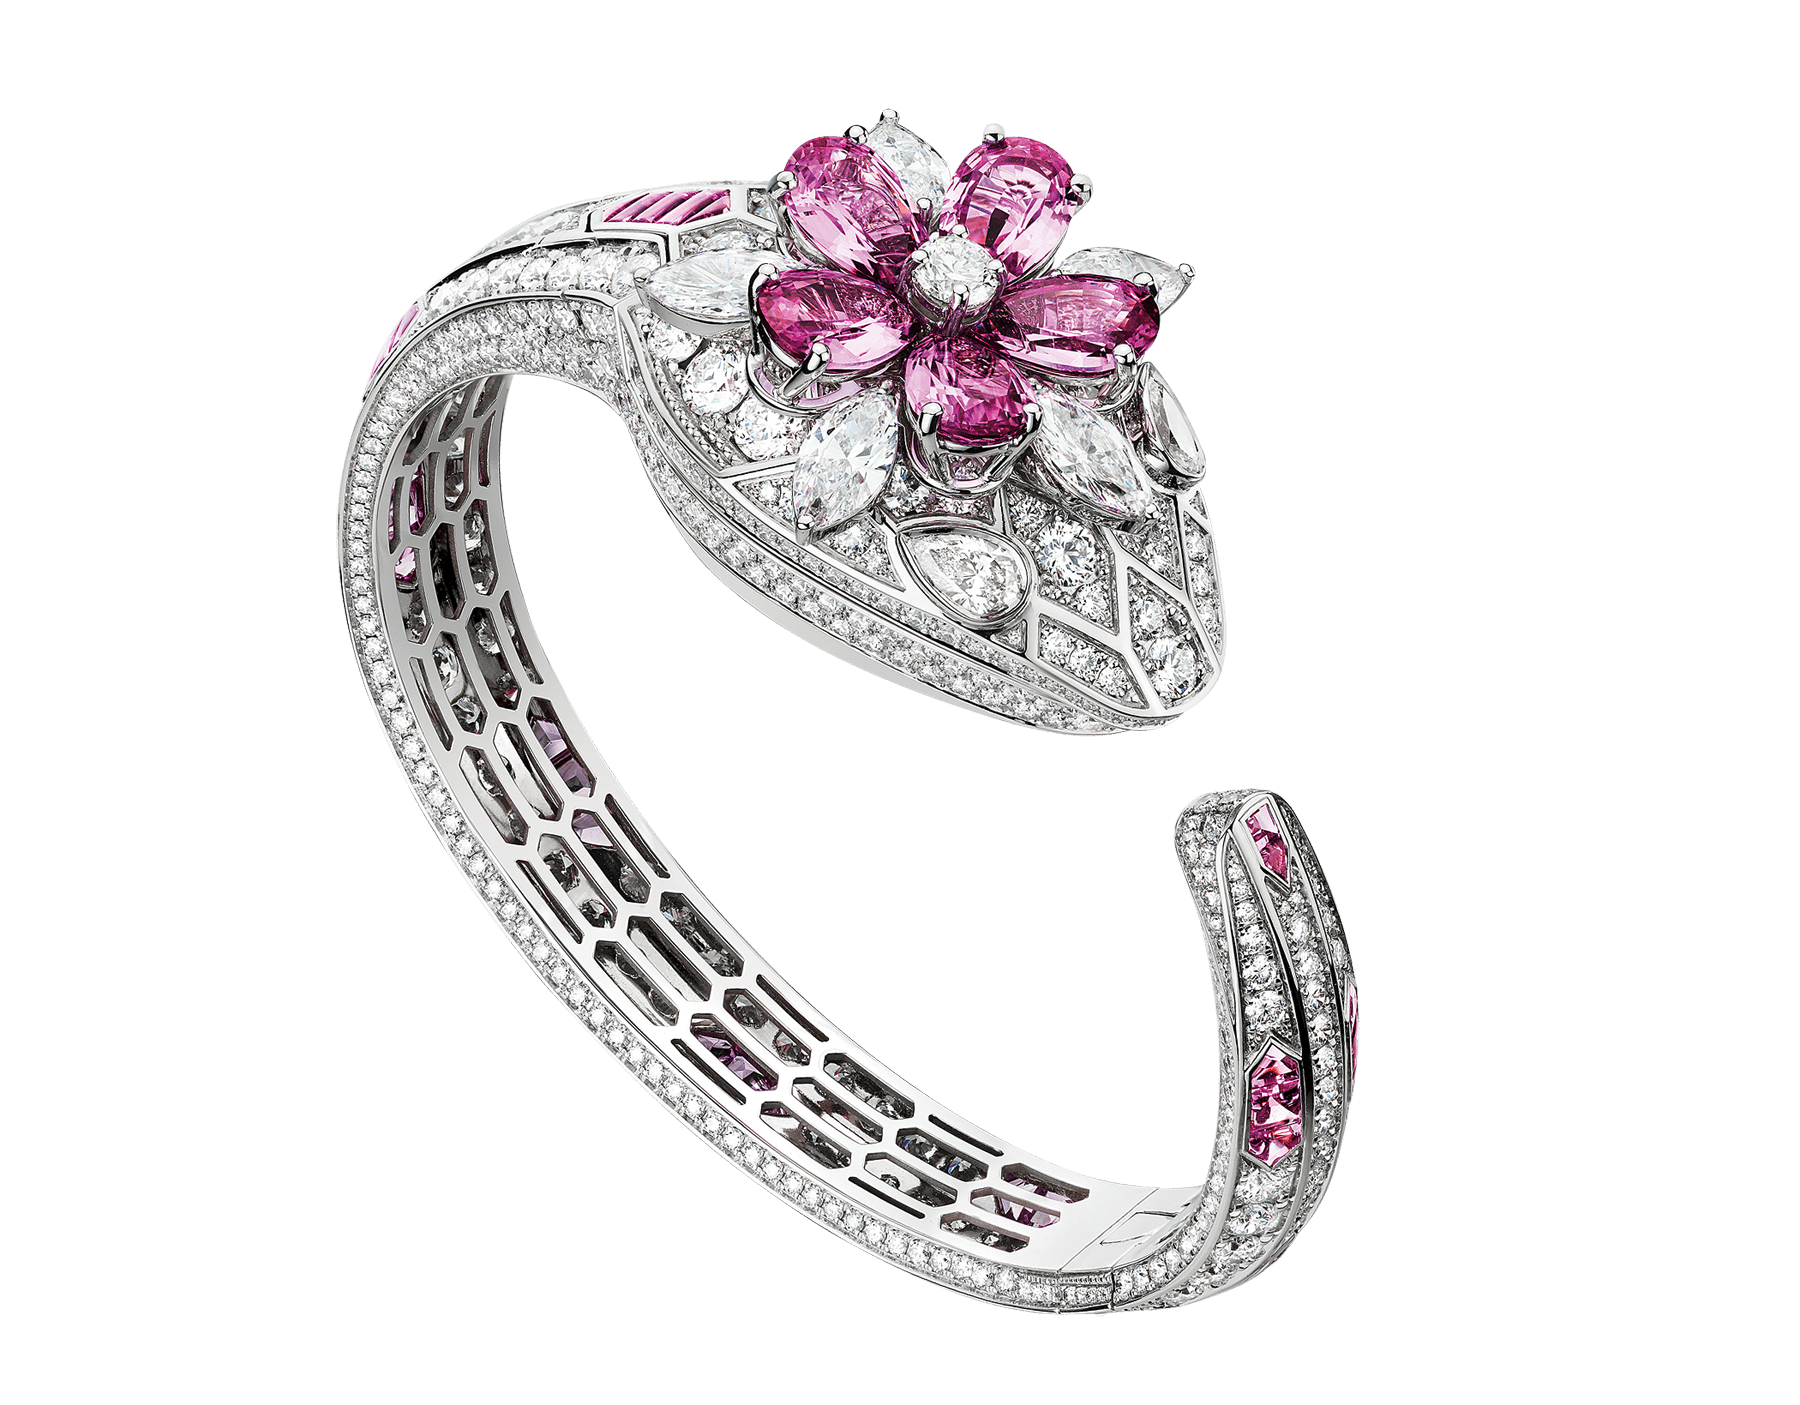 Serpenti Misteriosi watch with 18 kt white gold head set with round brilliant-cut diamonds and a flower in pear shaped pink sapphires and marquise shaped diamonds, 18 kt white gold case, dial fully set with round brilliant-cut diamonds, 18 kt white gold bracelet set with round brilliant-cut diamonds and buff-cut pink sapphires, and pear-shaped diamond eyes. Medium size 103178 image 1